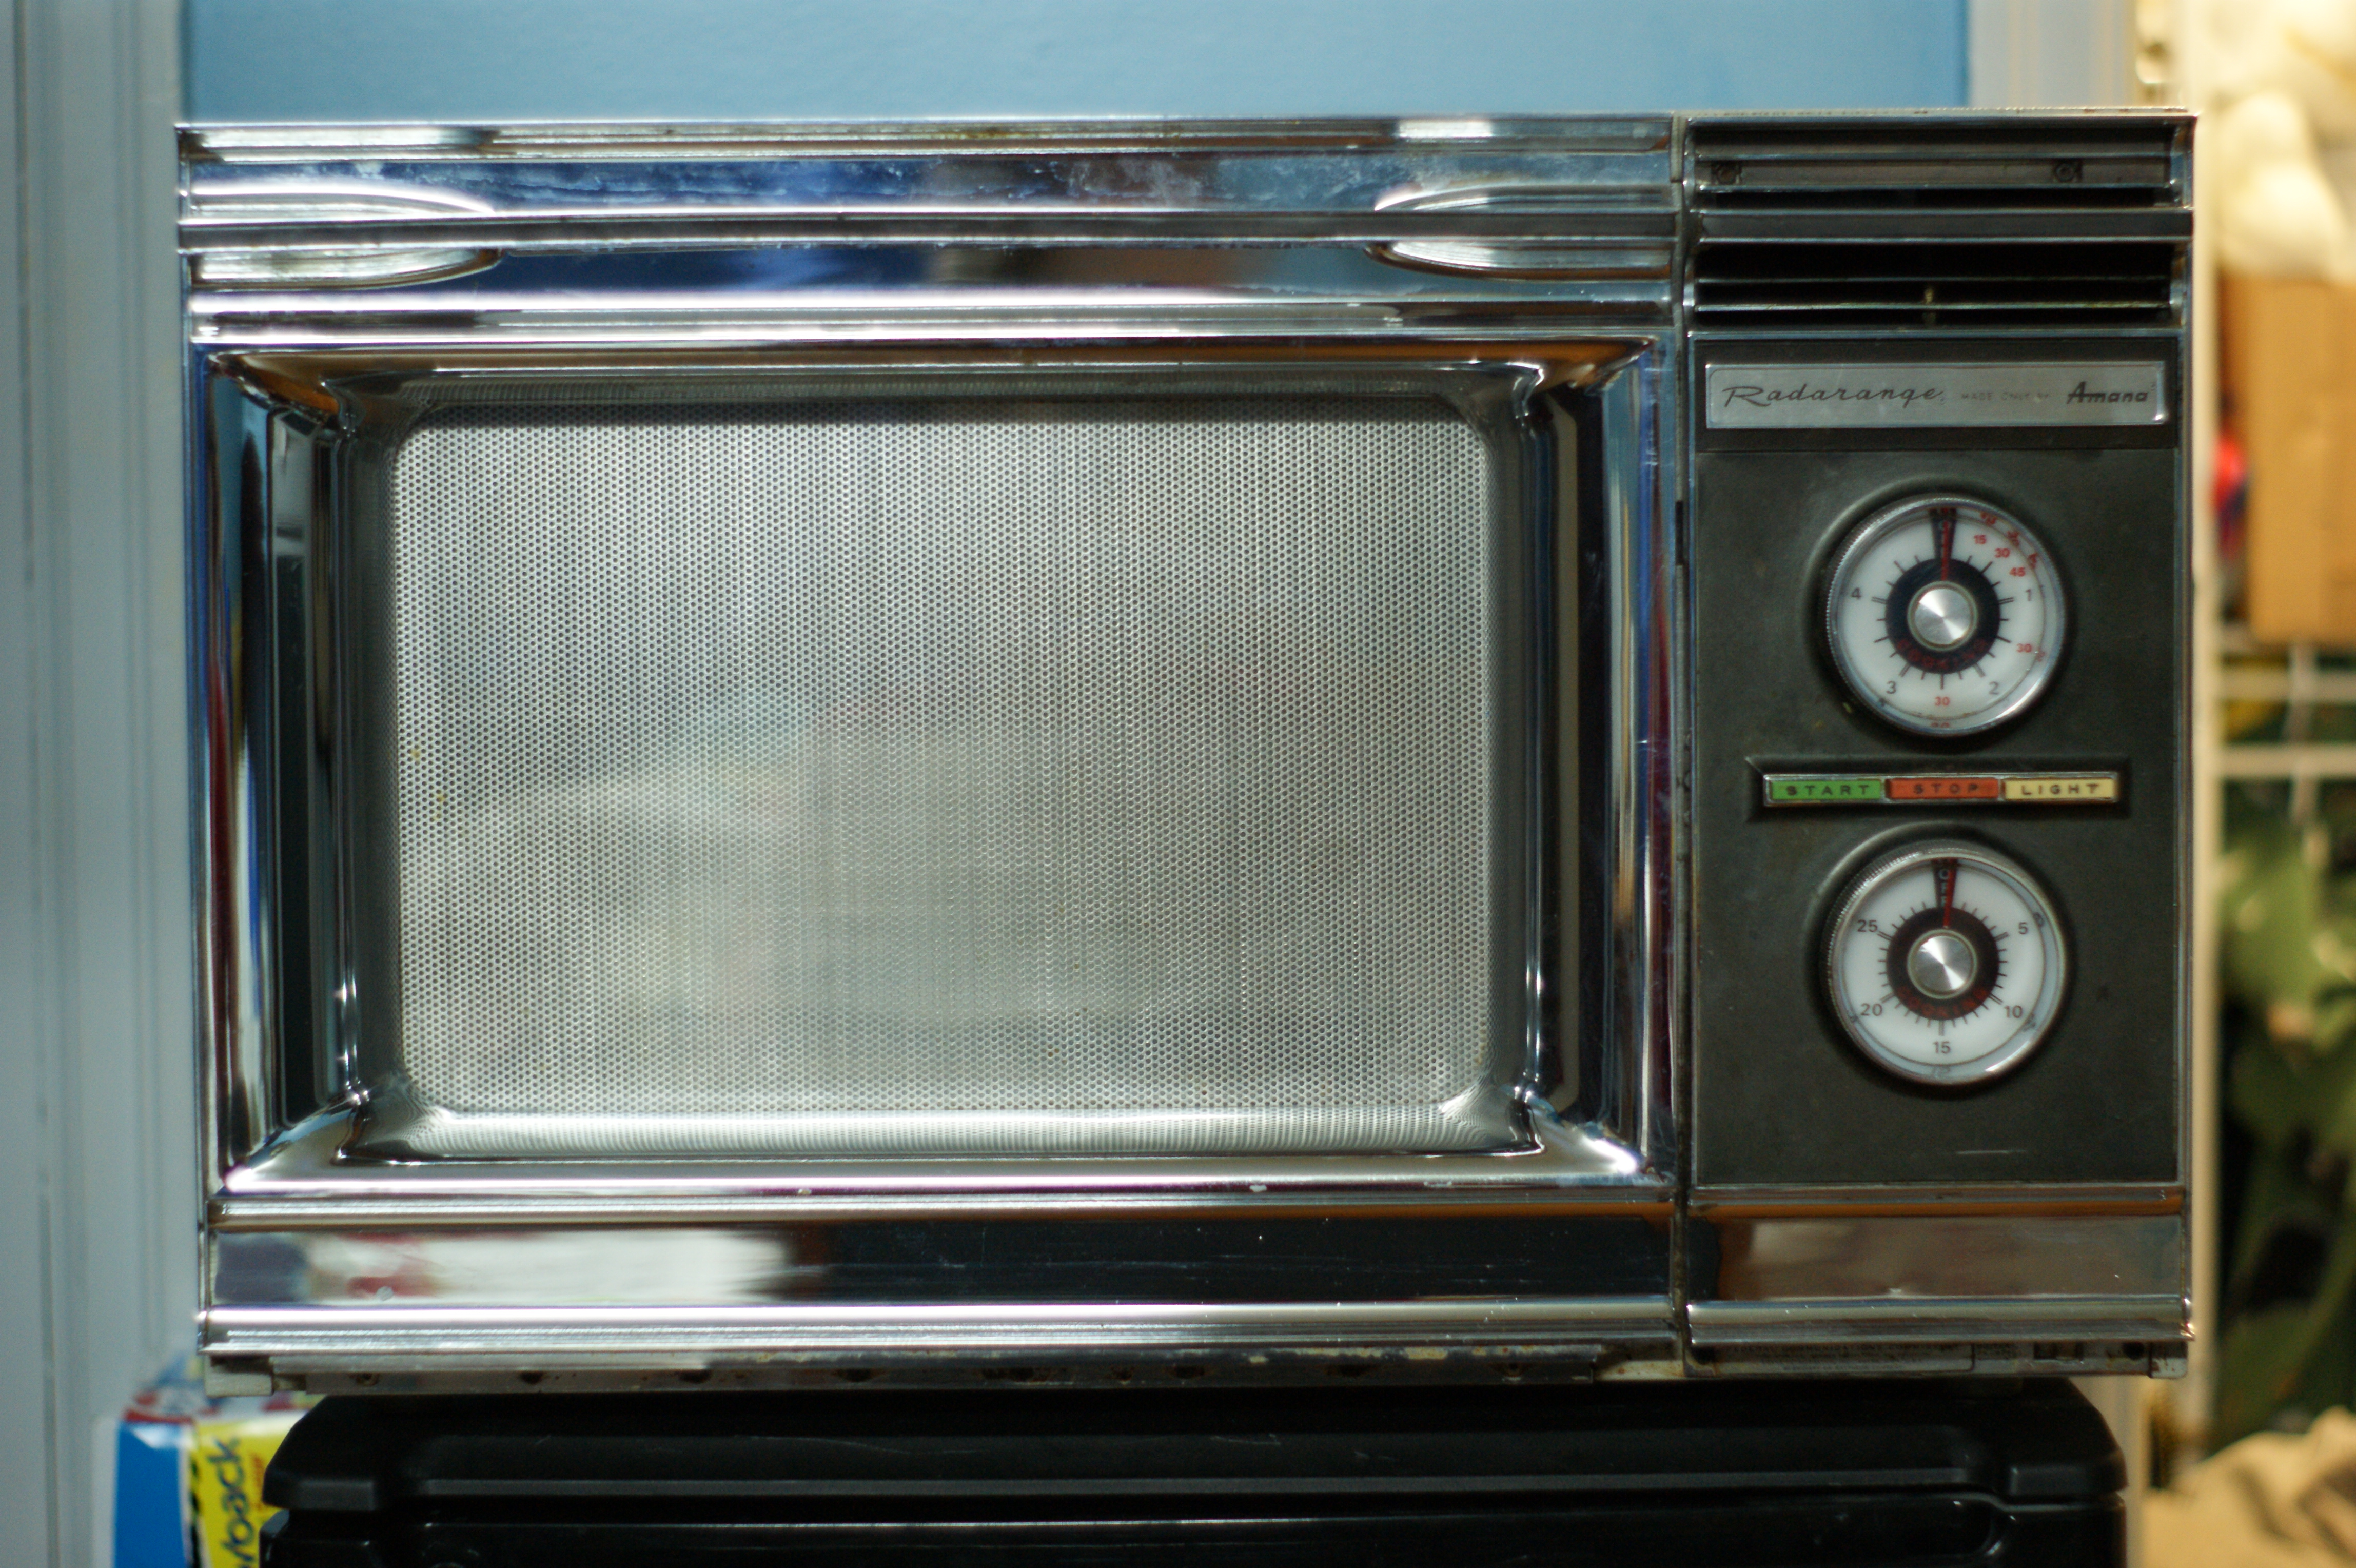 Microwave Oven 1946 ~ Microwaveable definition what is